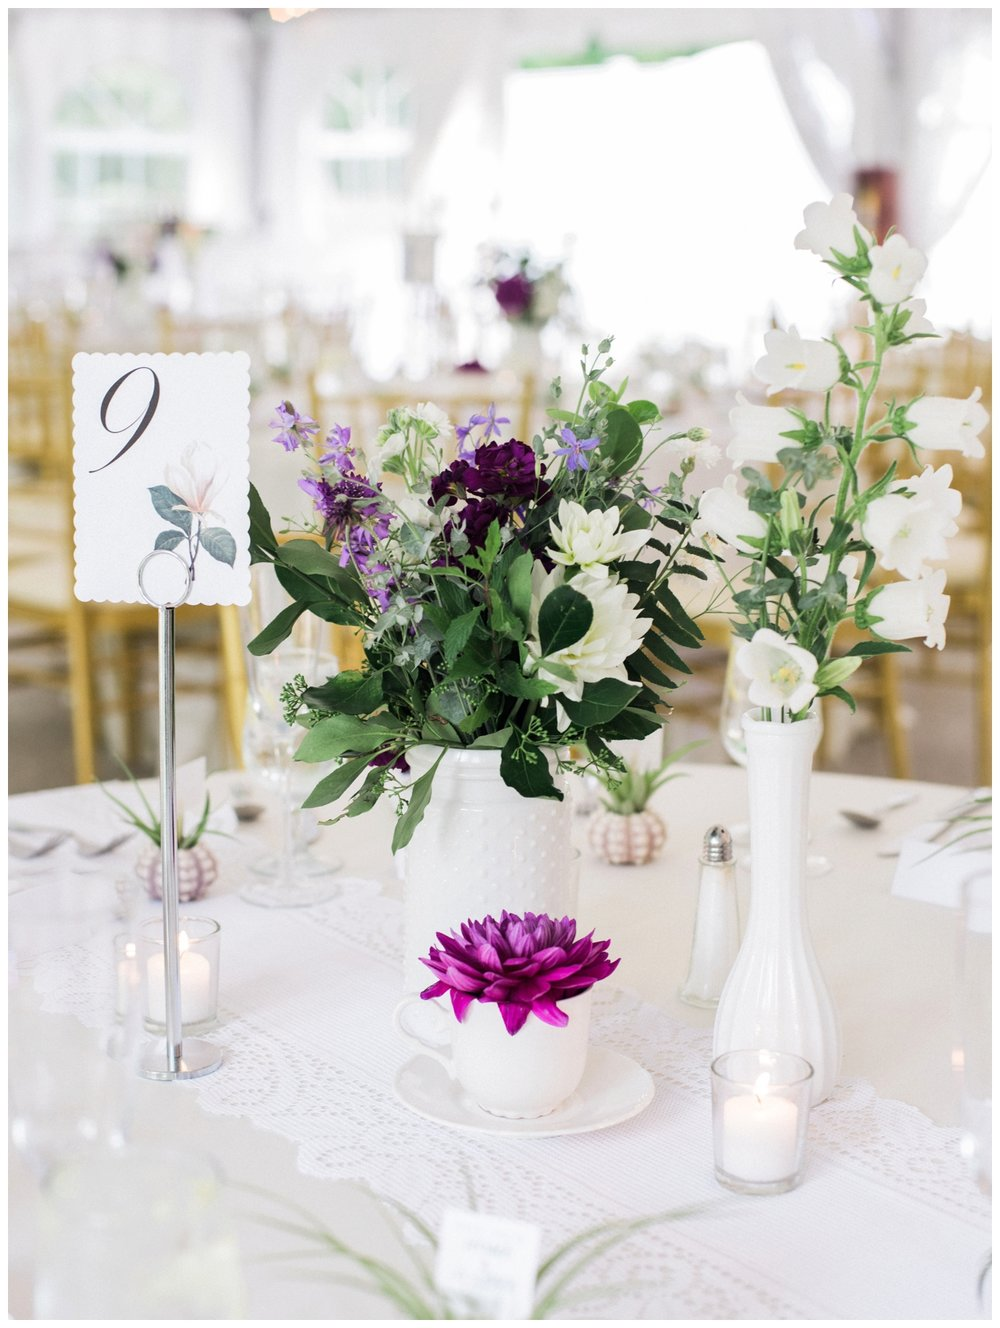 Purple summer wedding at Rust Manor House in Leesburg, Virginia by fine art wedding photographer Lissa Ryan Photography